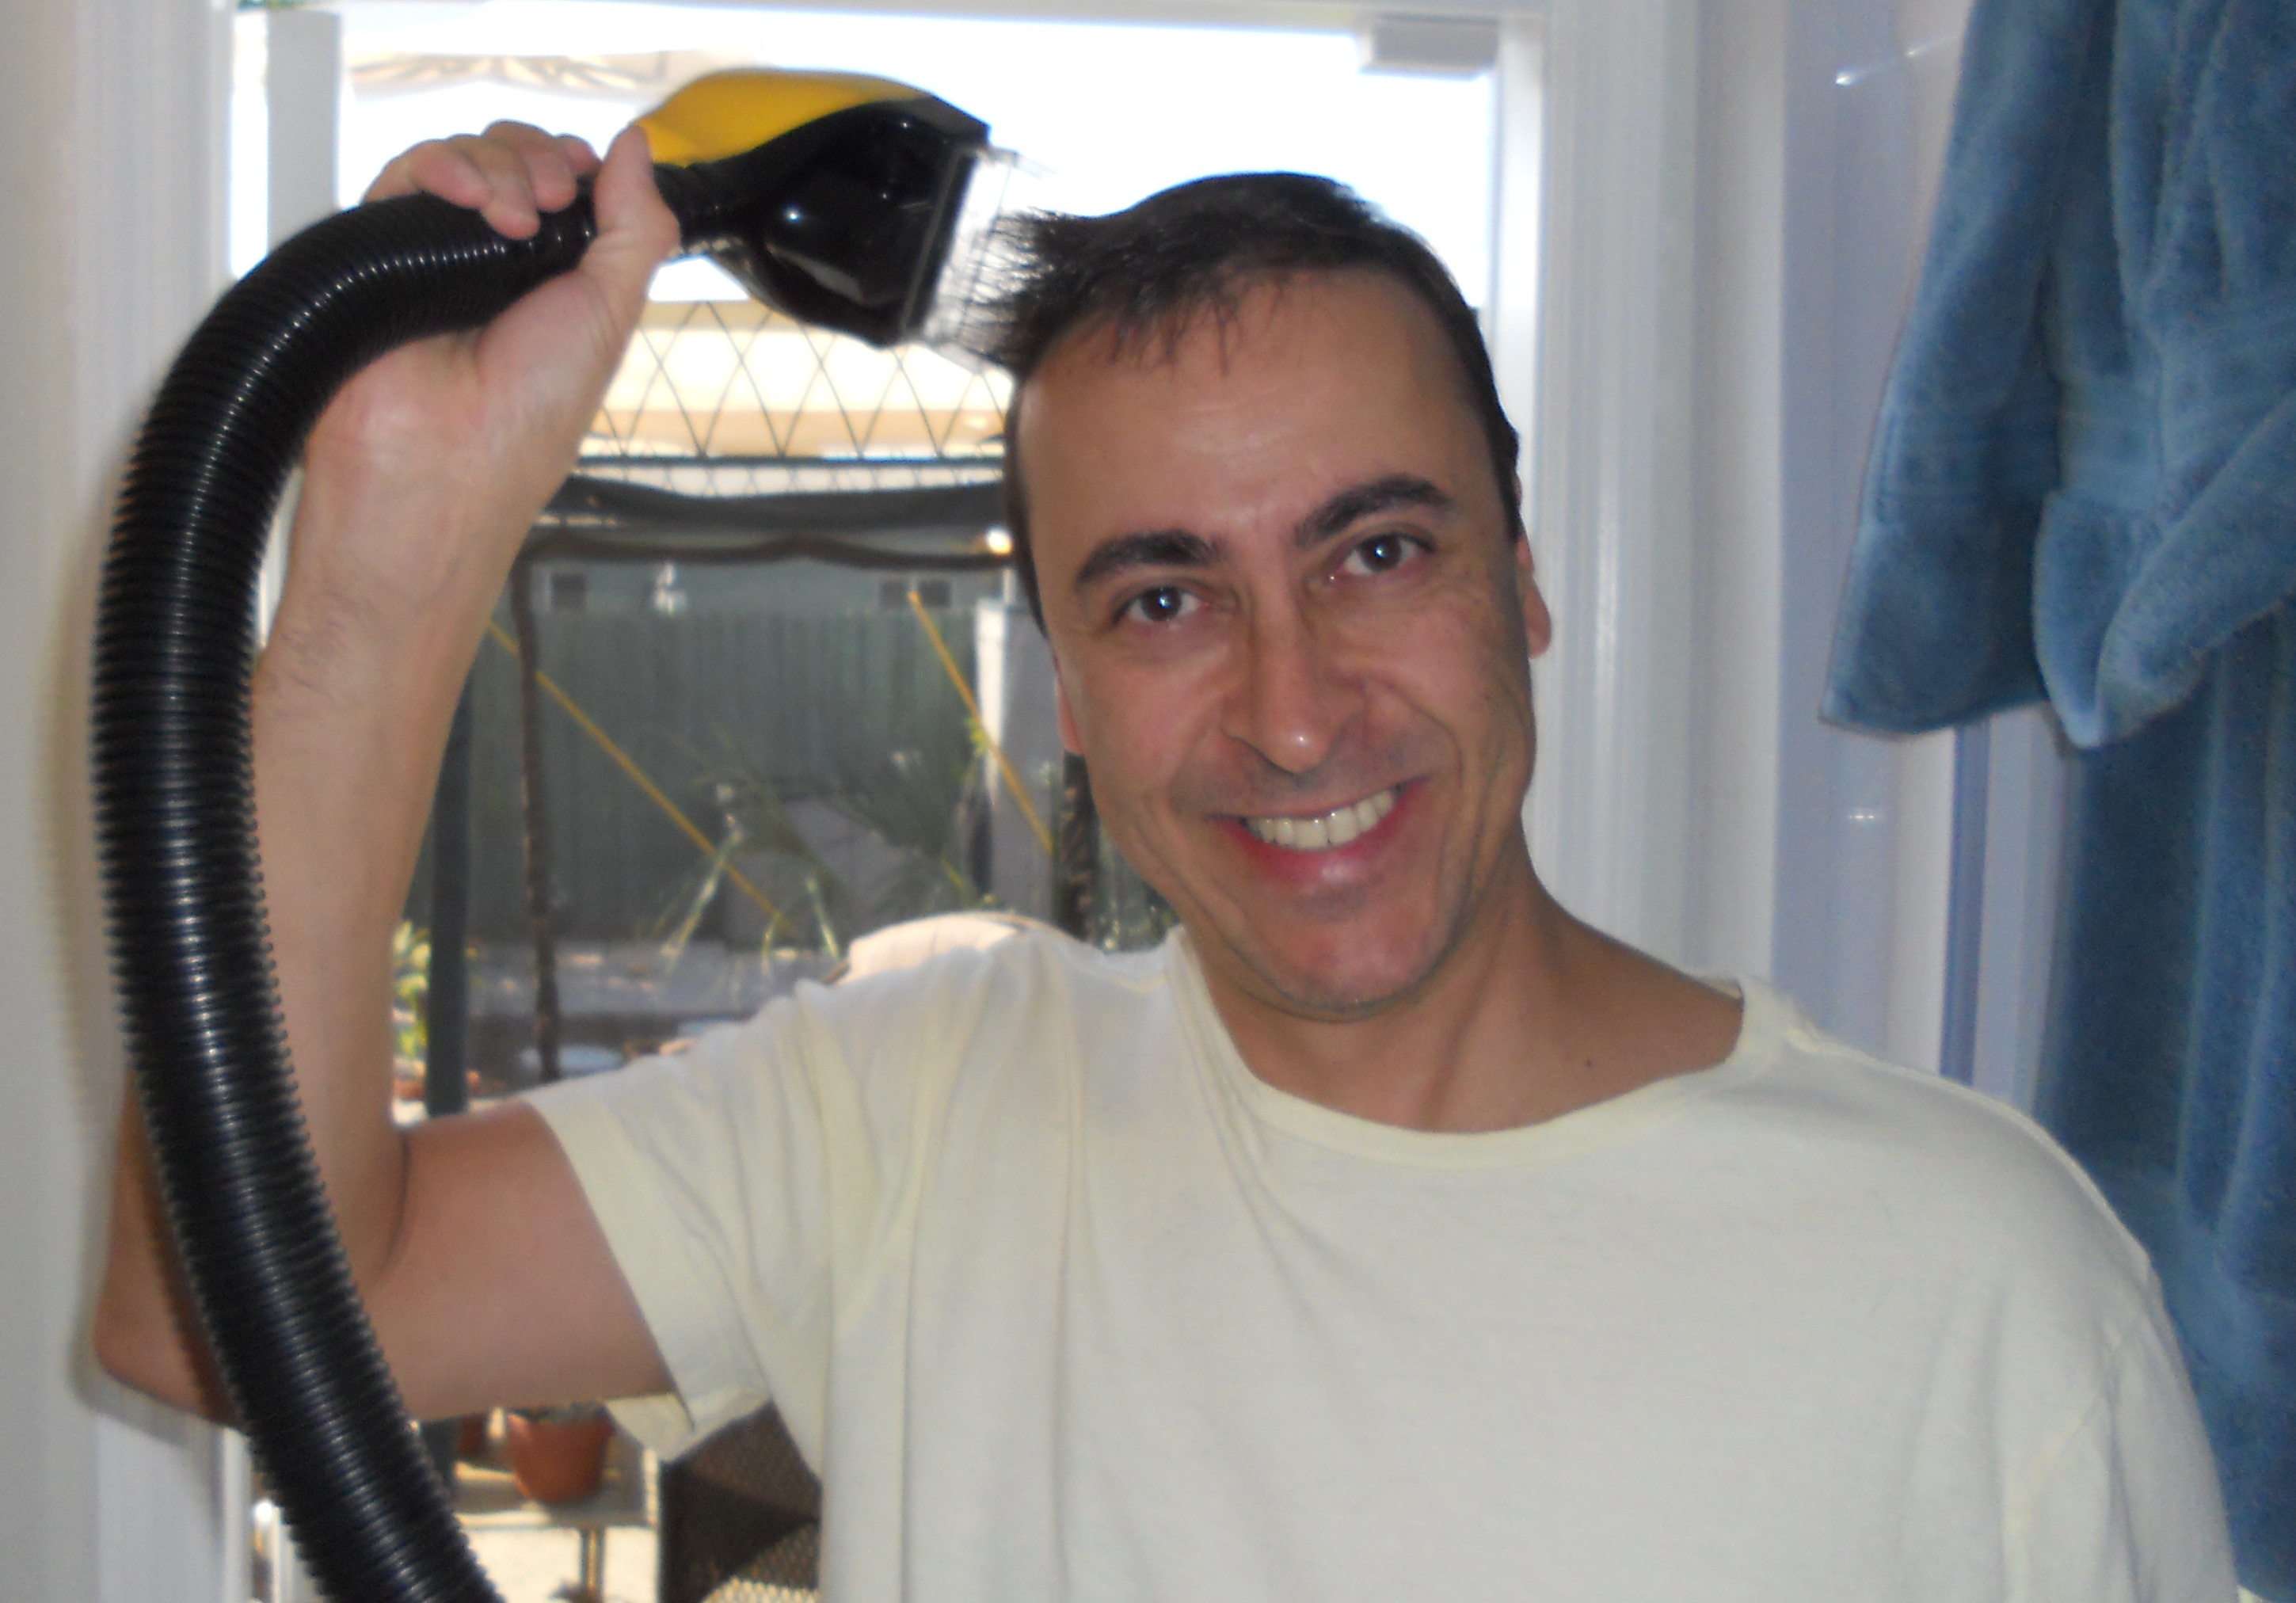 File:Man using Flowbee to cut his hair.jpg  Wikipedia, the free